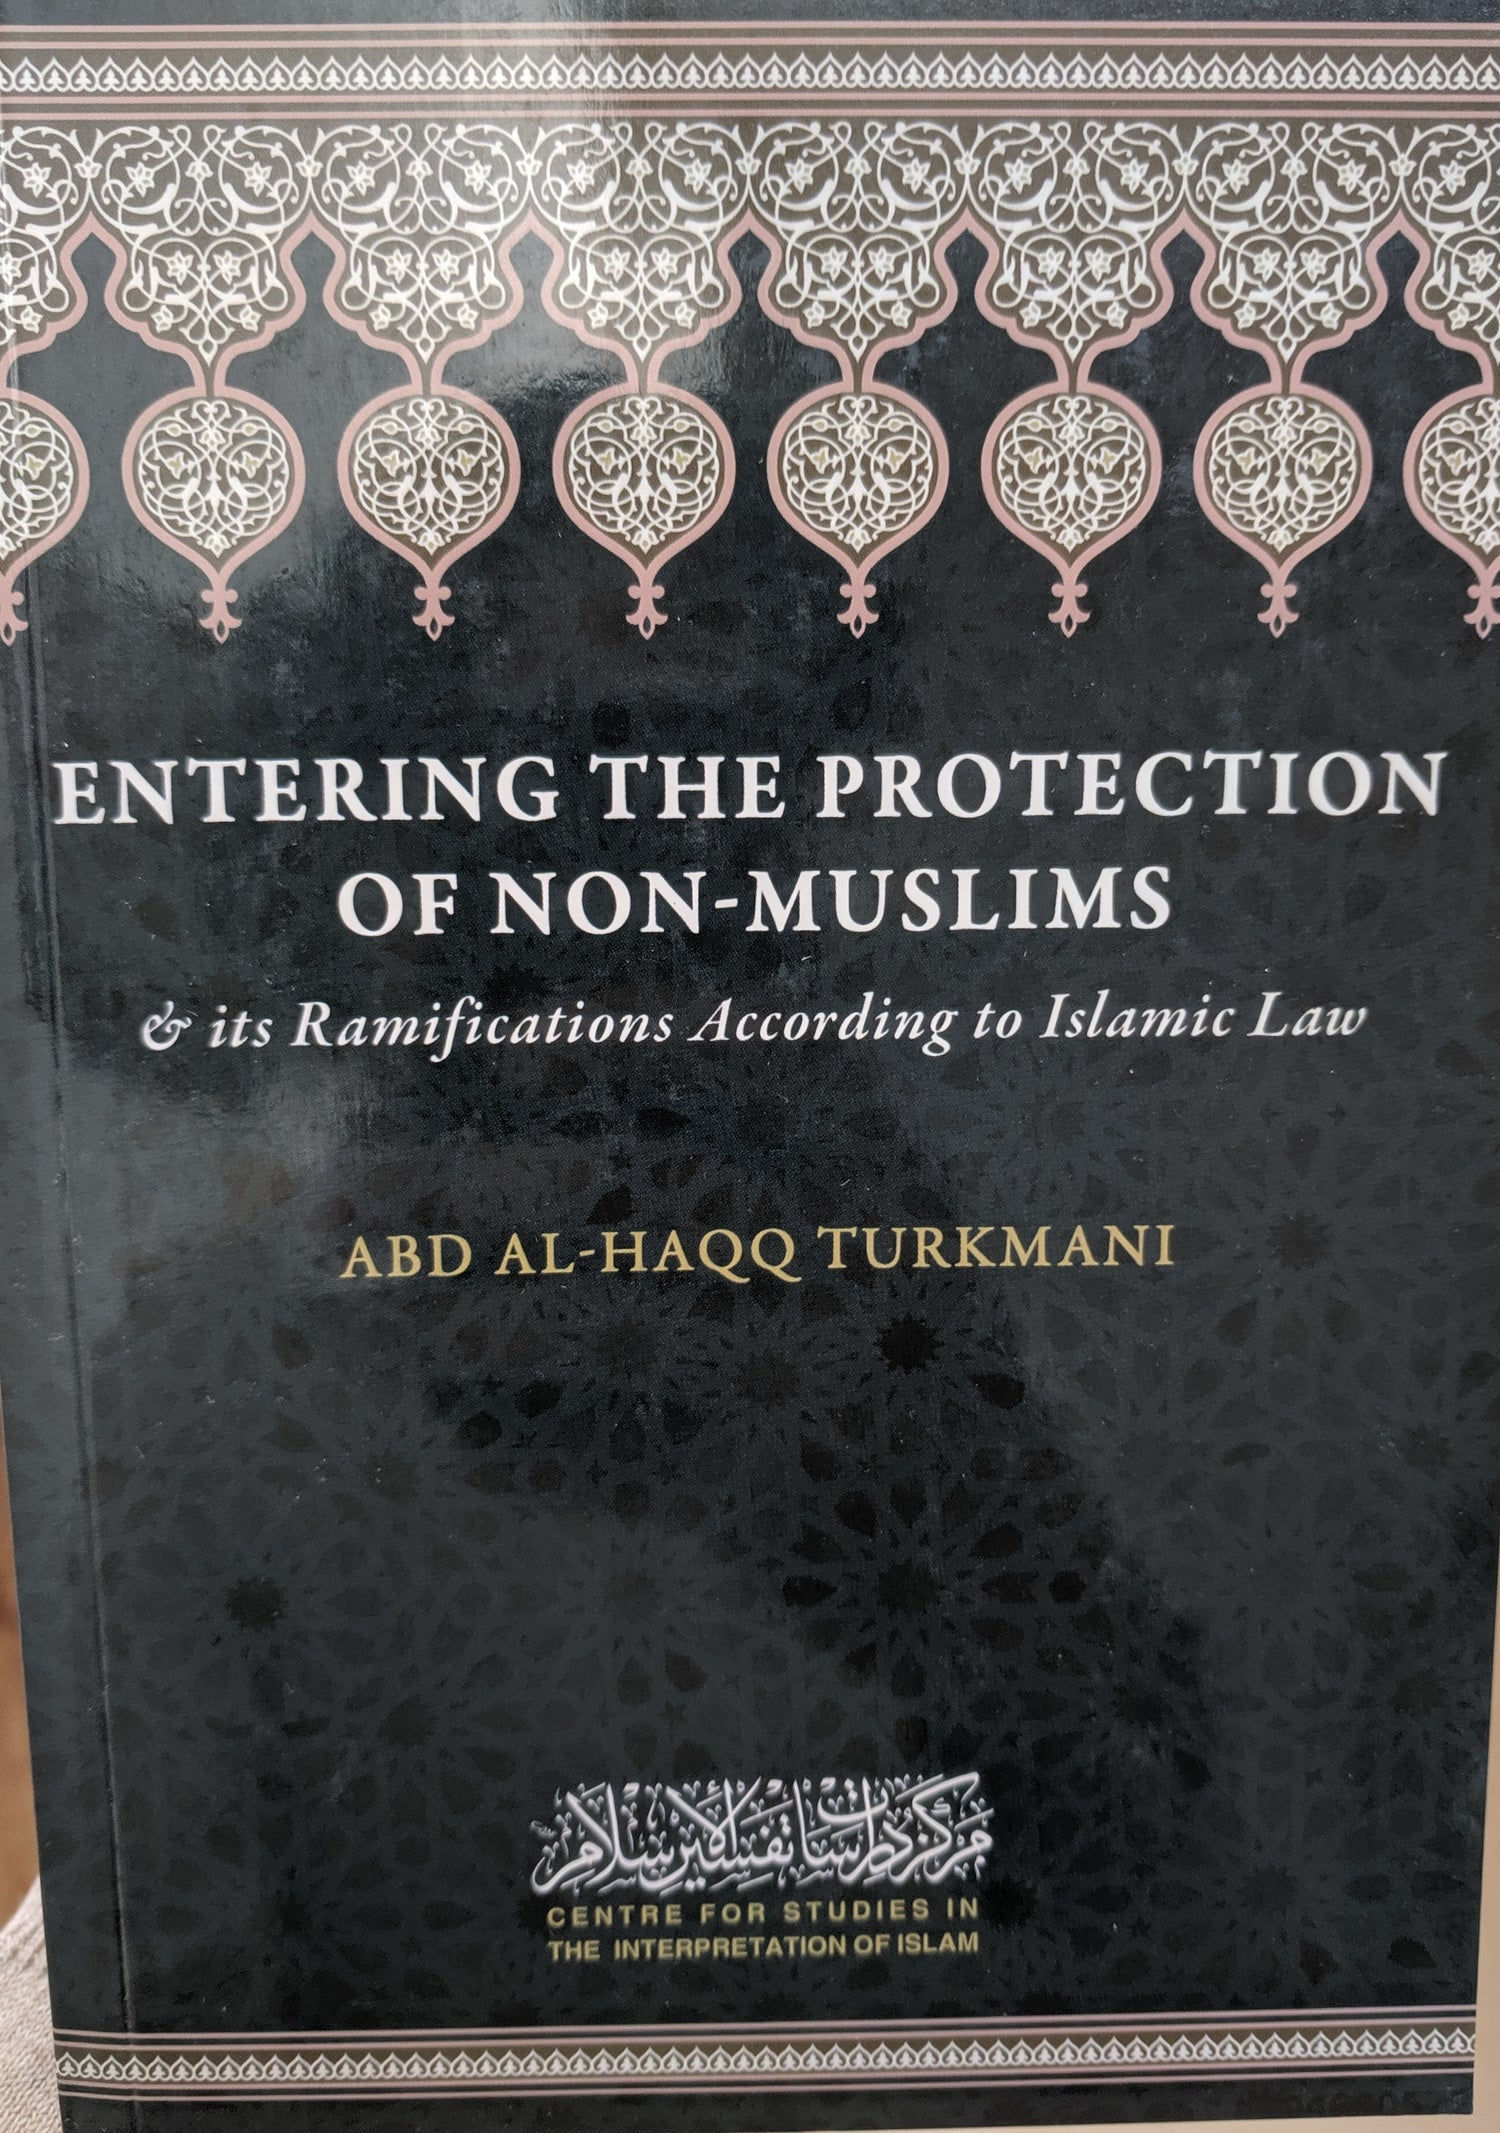 Image of Entering the Protection of the Non-Muslims & It's Ramifications According to Islamic Law